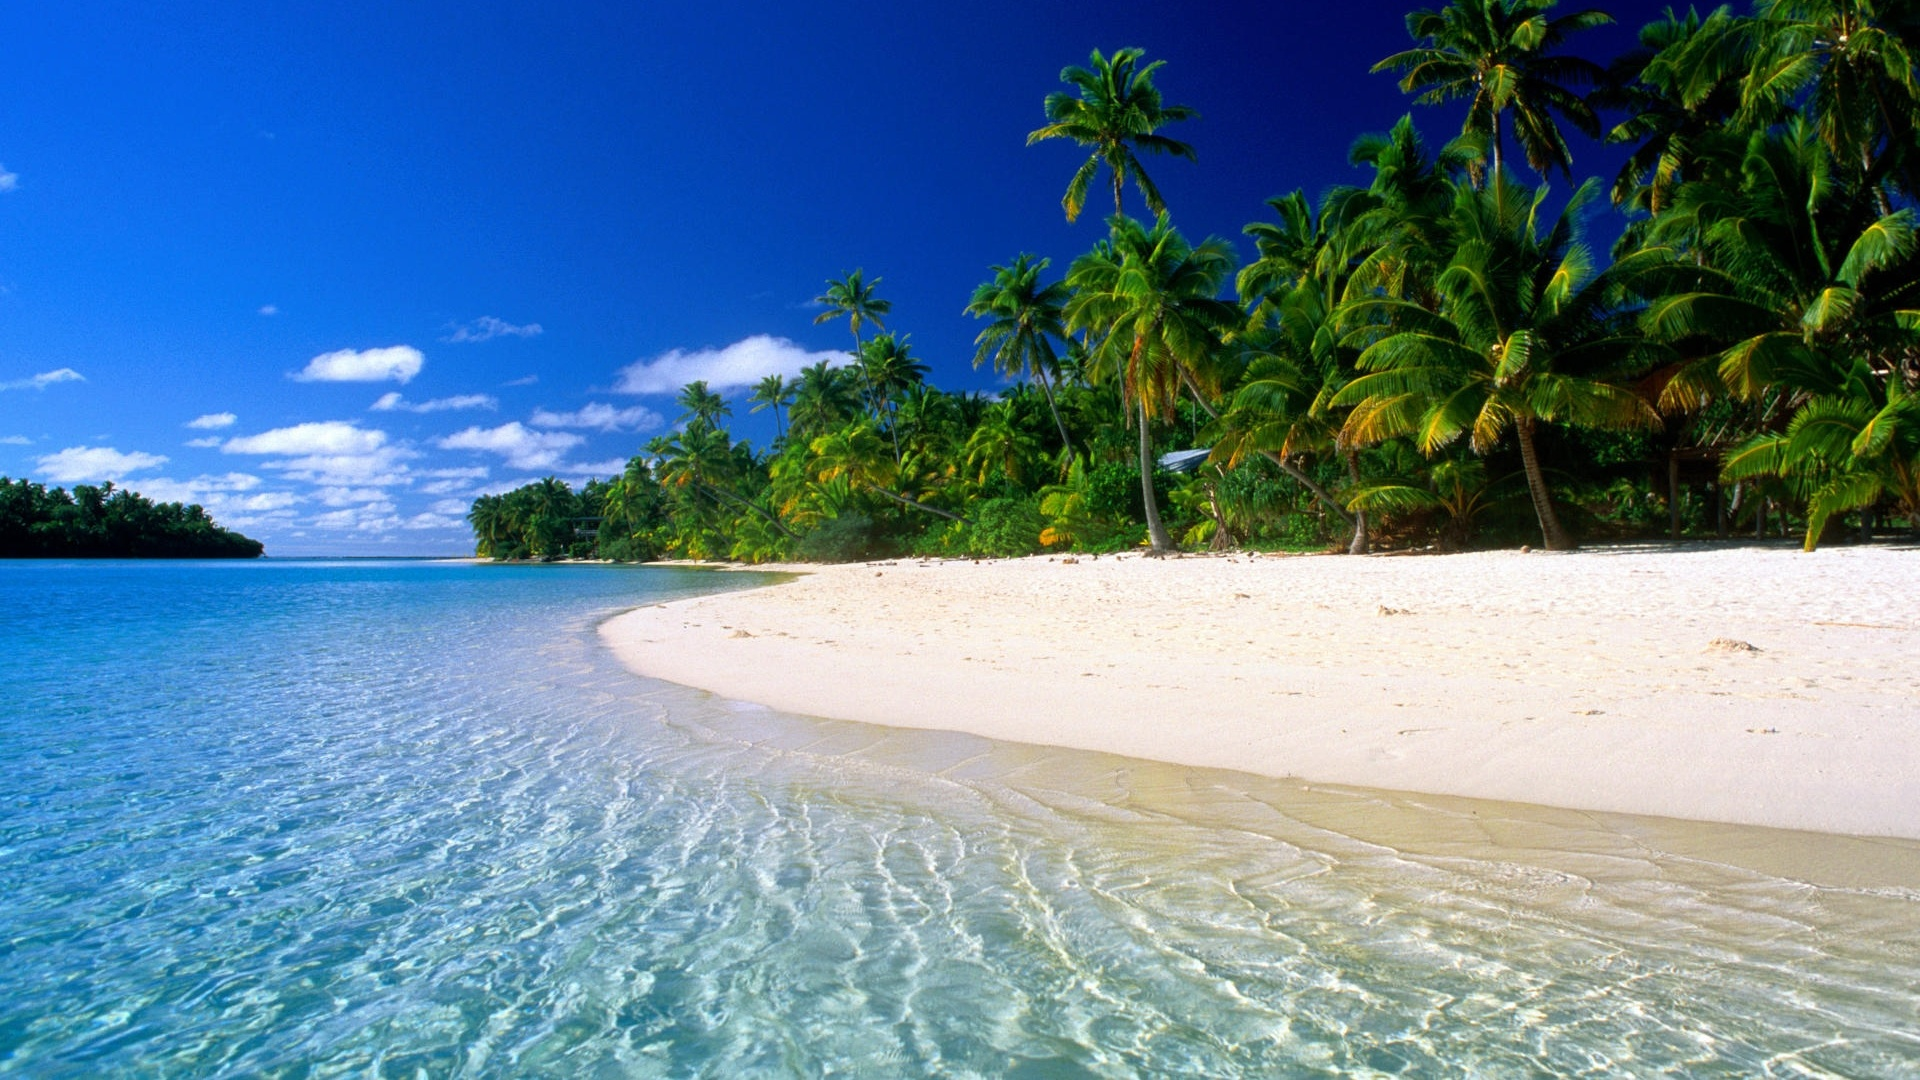 Beautiful beach hd